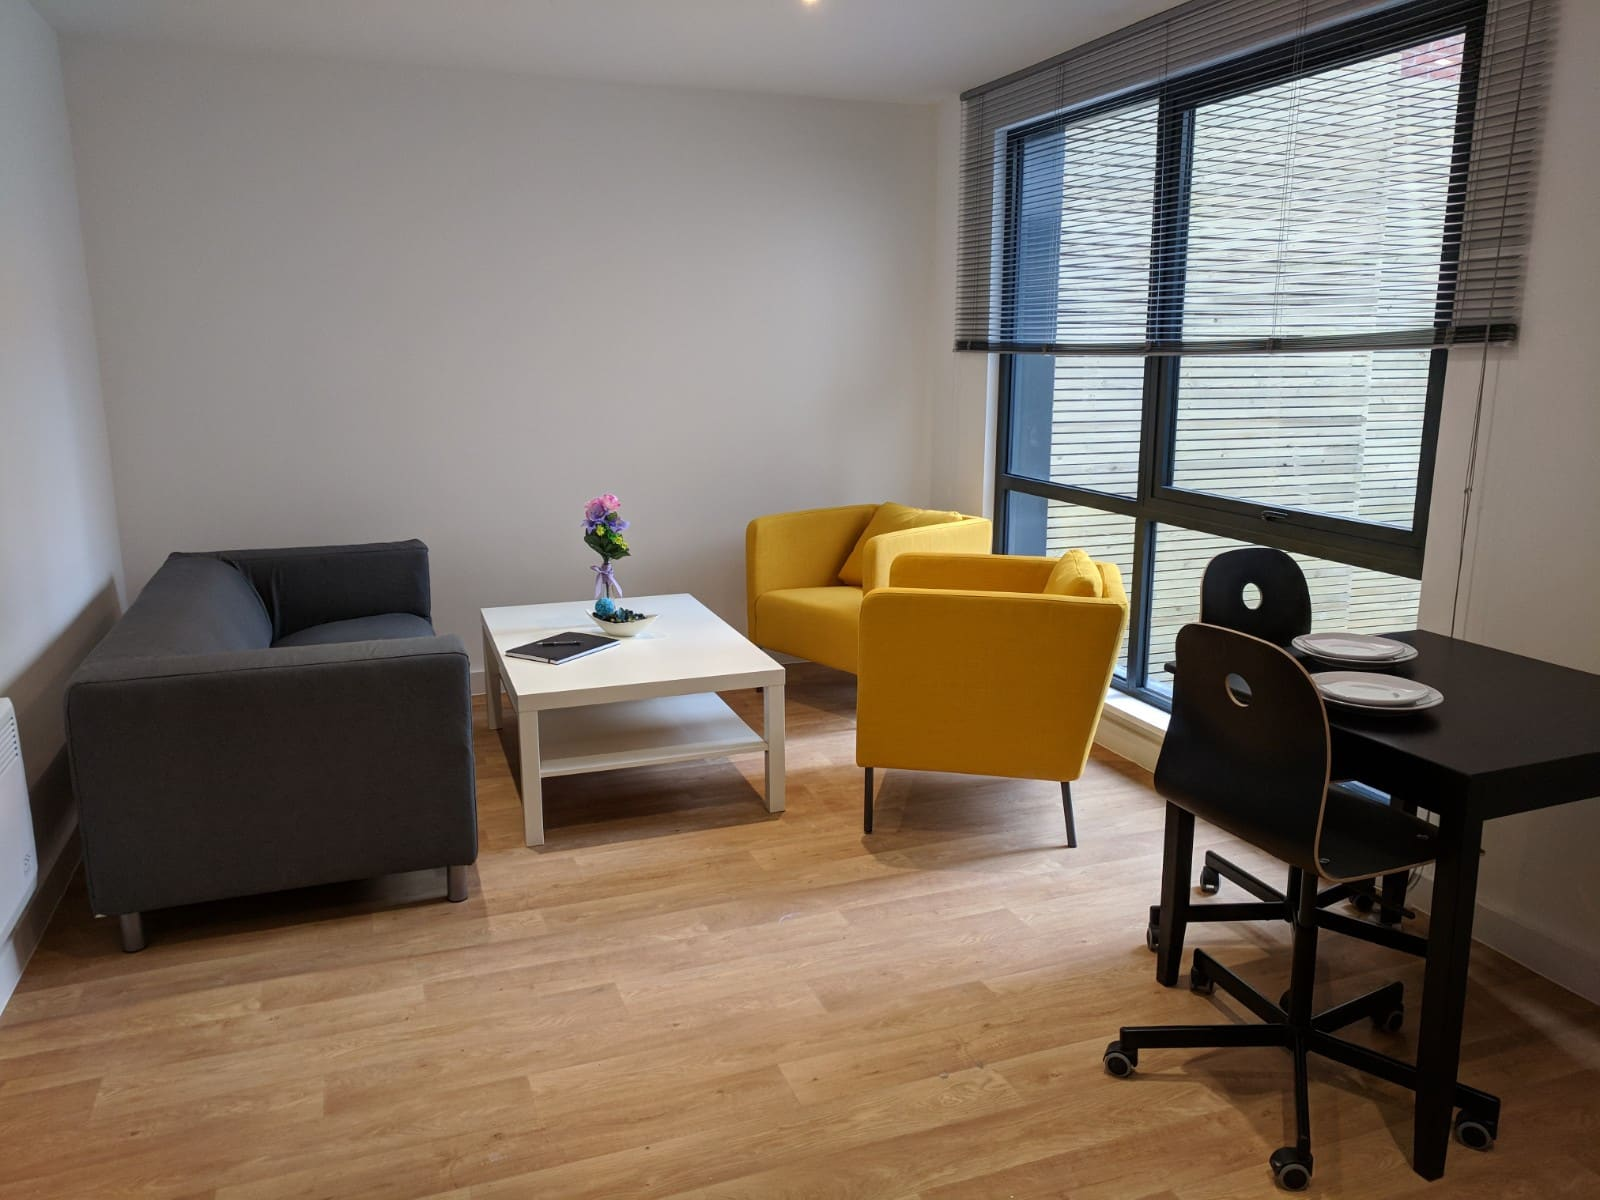 Westbar-House-Sheffield-Living-Area-2-Unilodgers